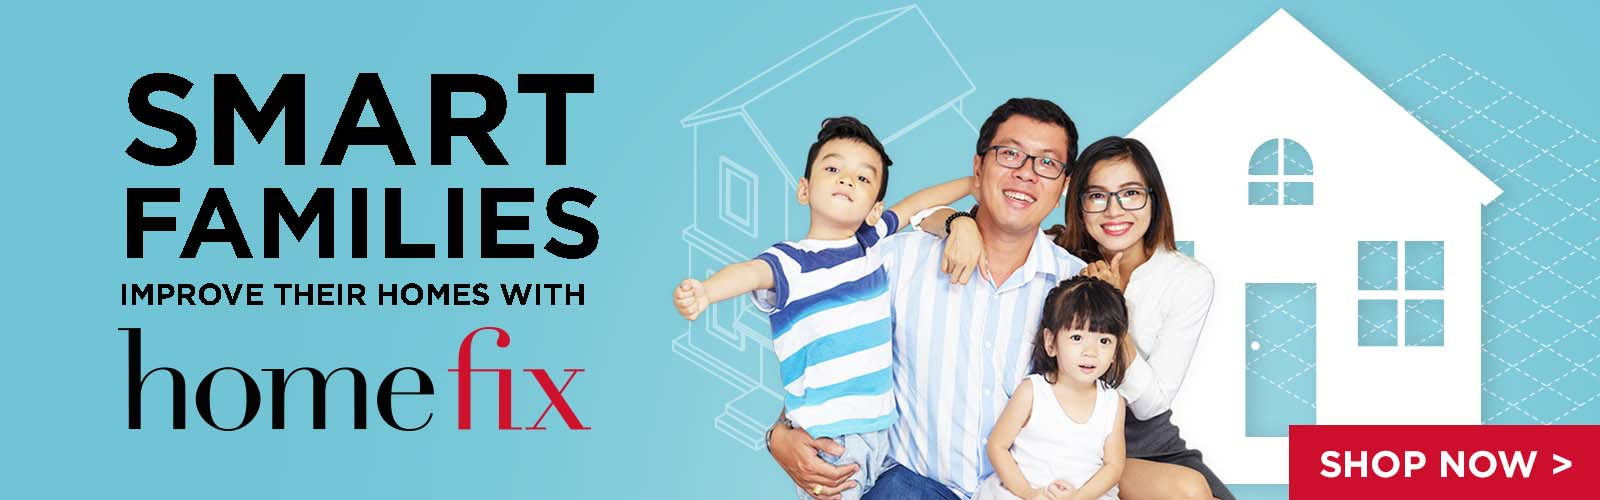 Homefix Singapore - Home Improvement Products and Services